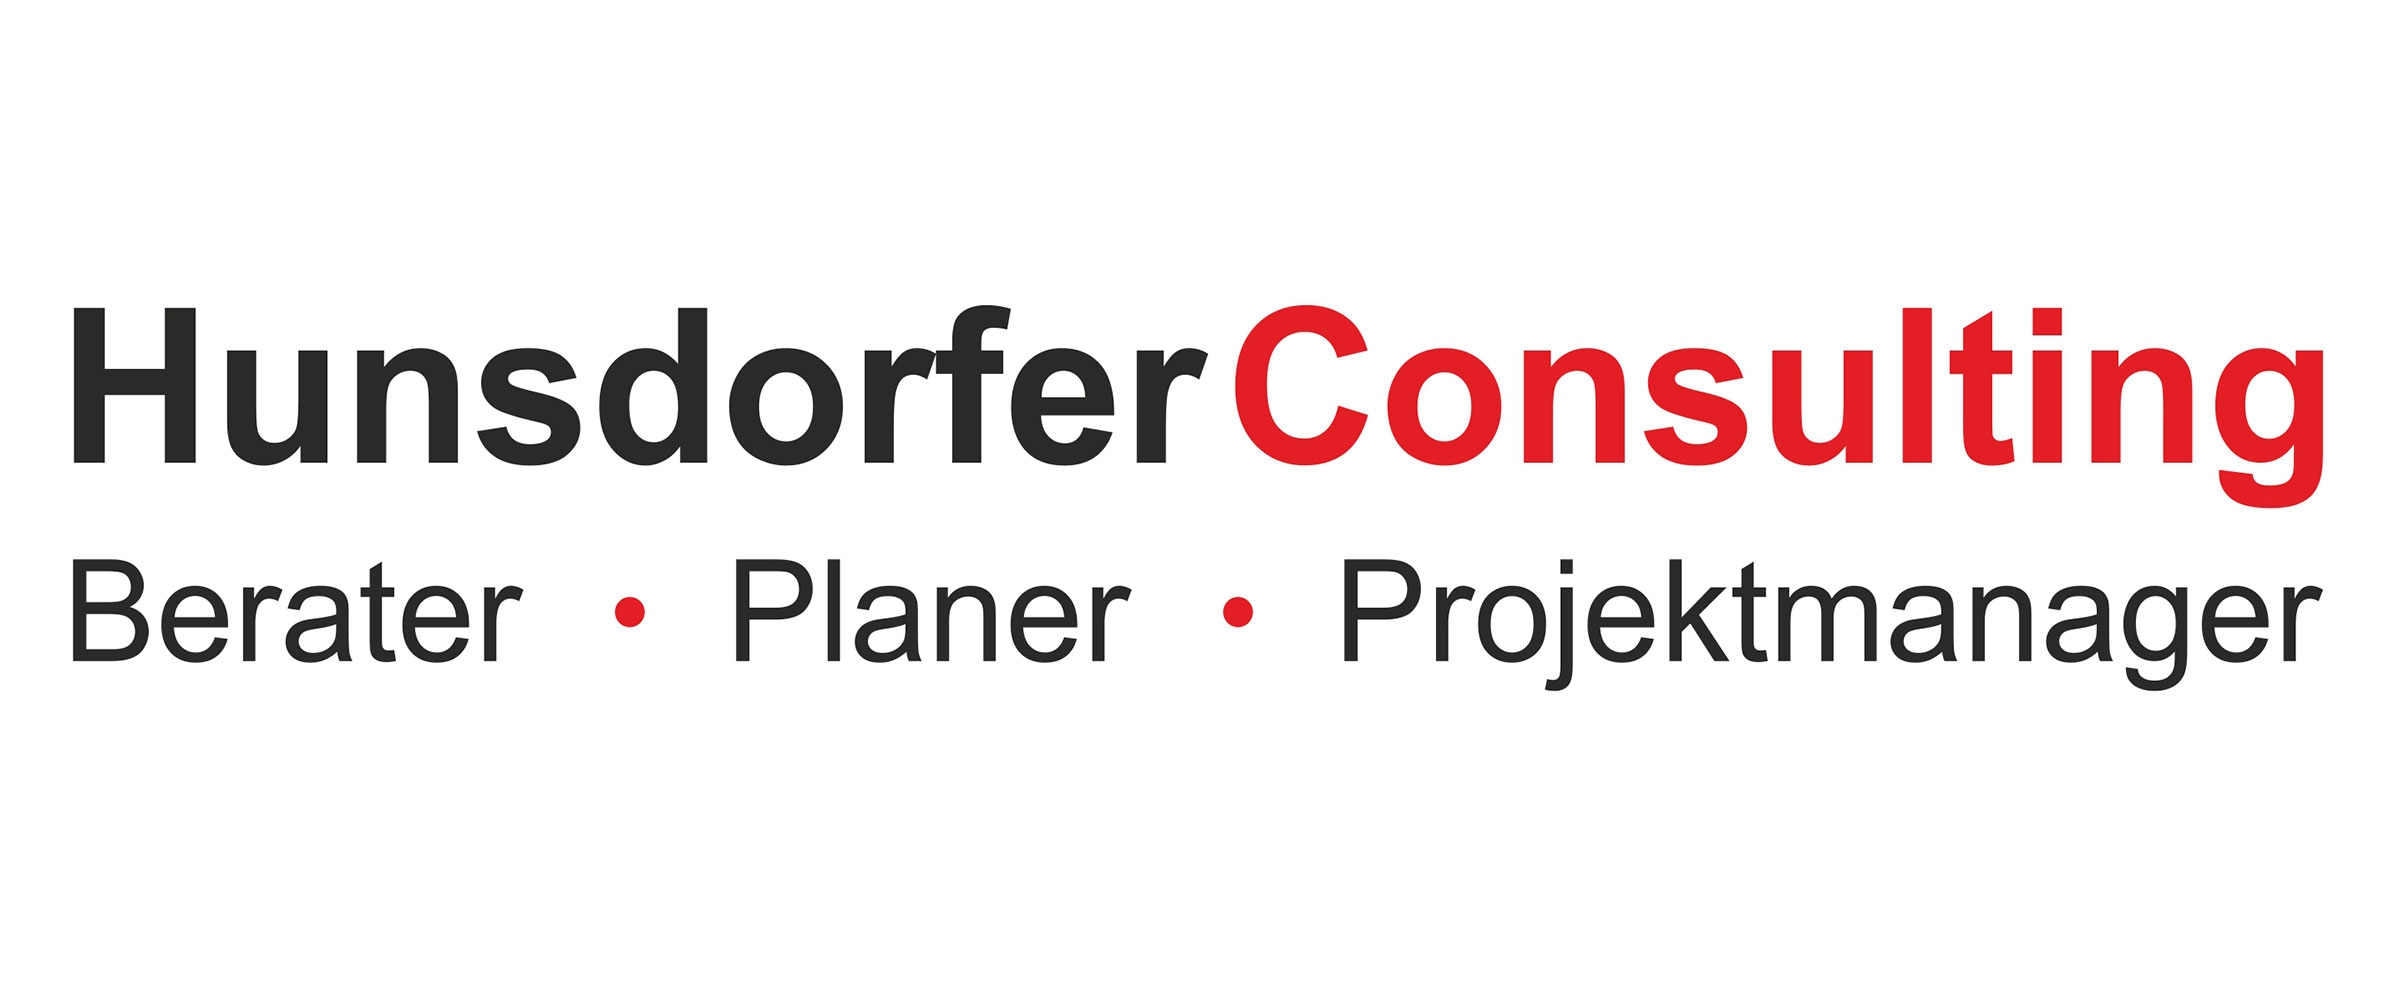 Hunsdorfer Consulting GmbH